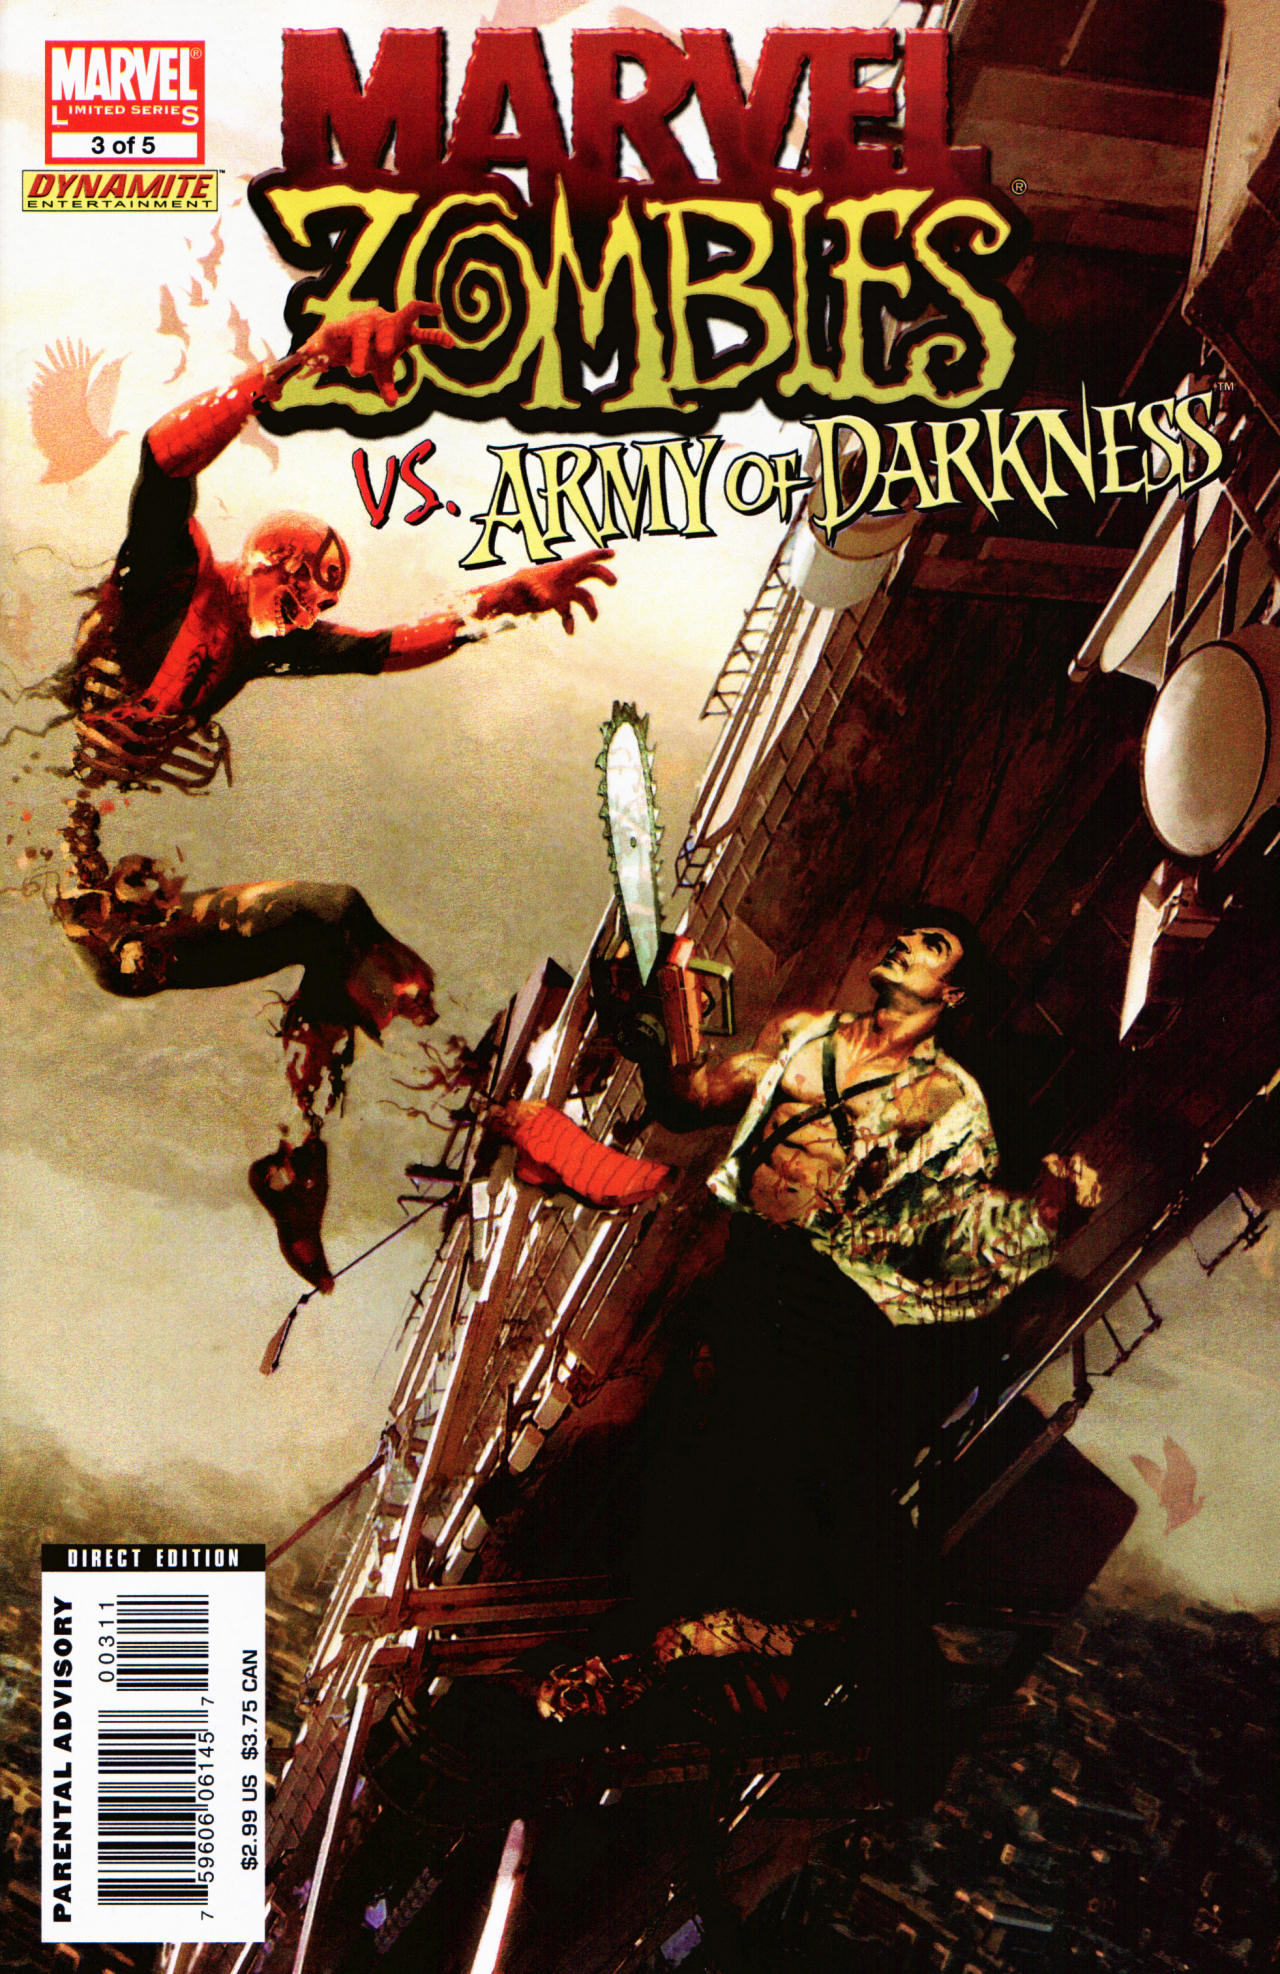 http://images3.wikia.nocookie.net/__cb20070622131130/marveldatabase/images/4/40/Marvel_Zombies_Vs._Army_of_Darkness_Vol_1_3.jpg